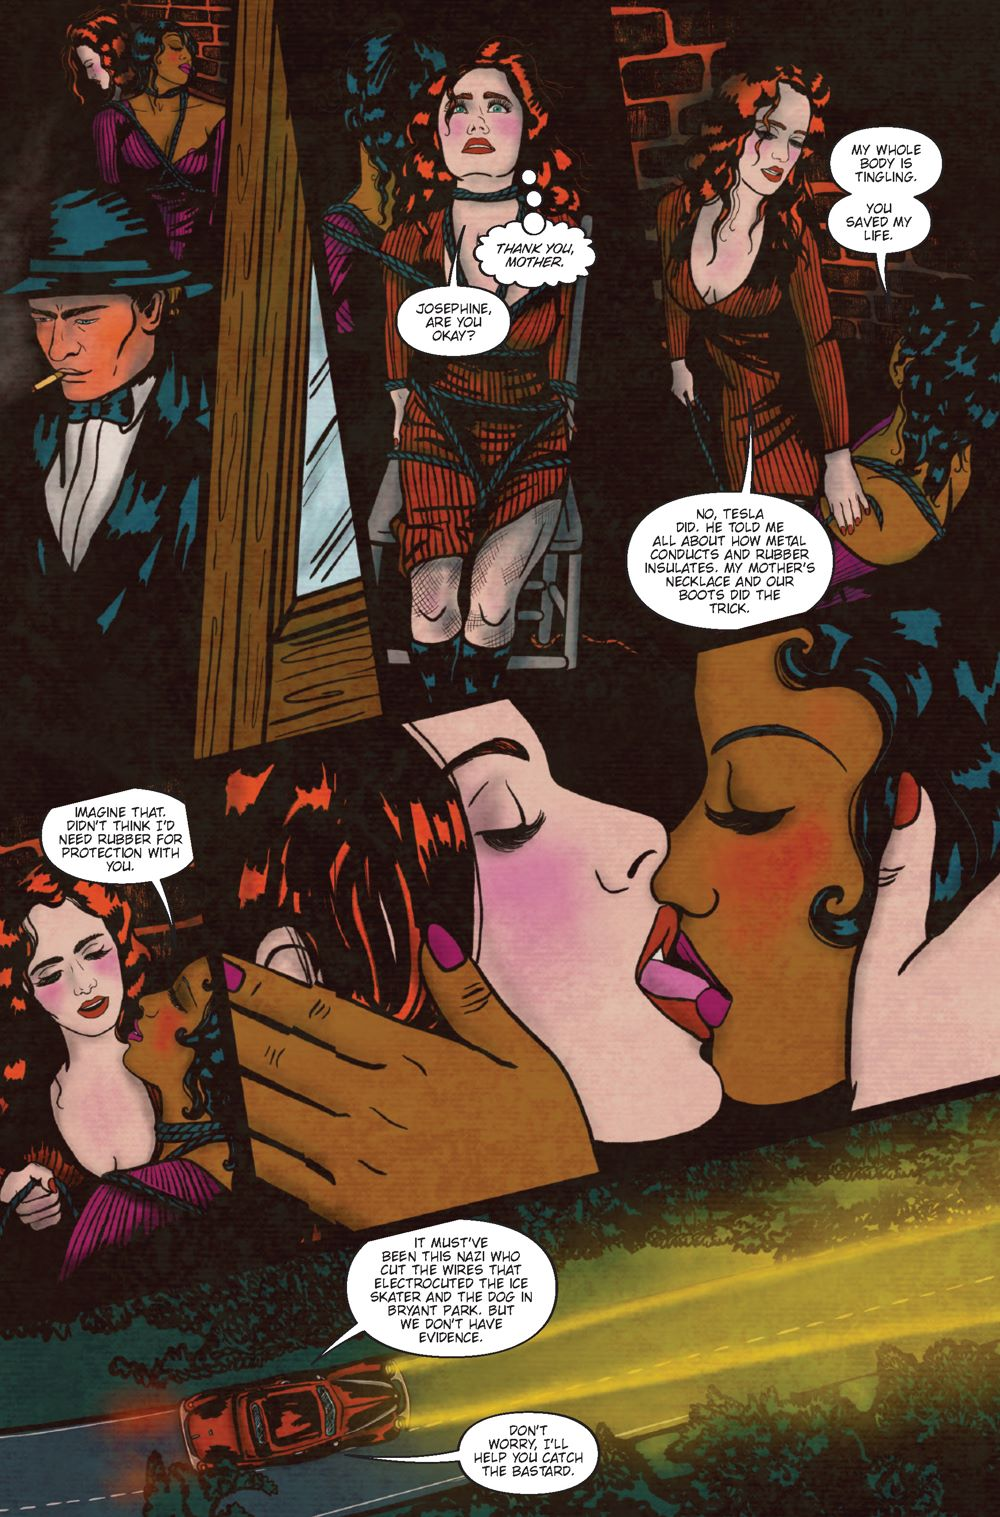 Pages-from-Binder3_Page_2 ComicList Previews: MINKY WOODCOCK THE GIRL WHO ELECTRIFIED TESLA #4